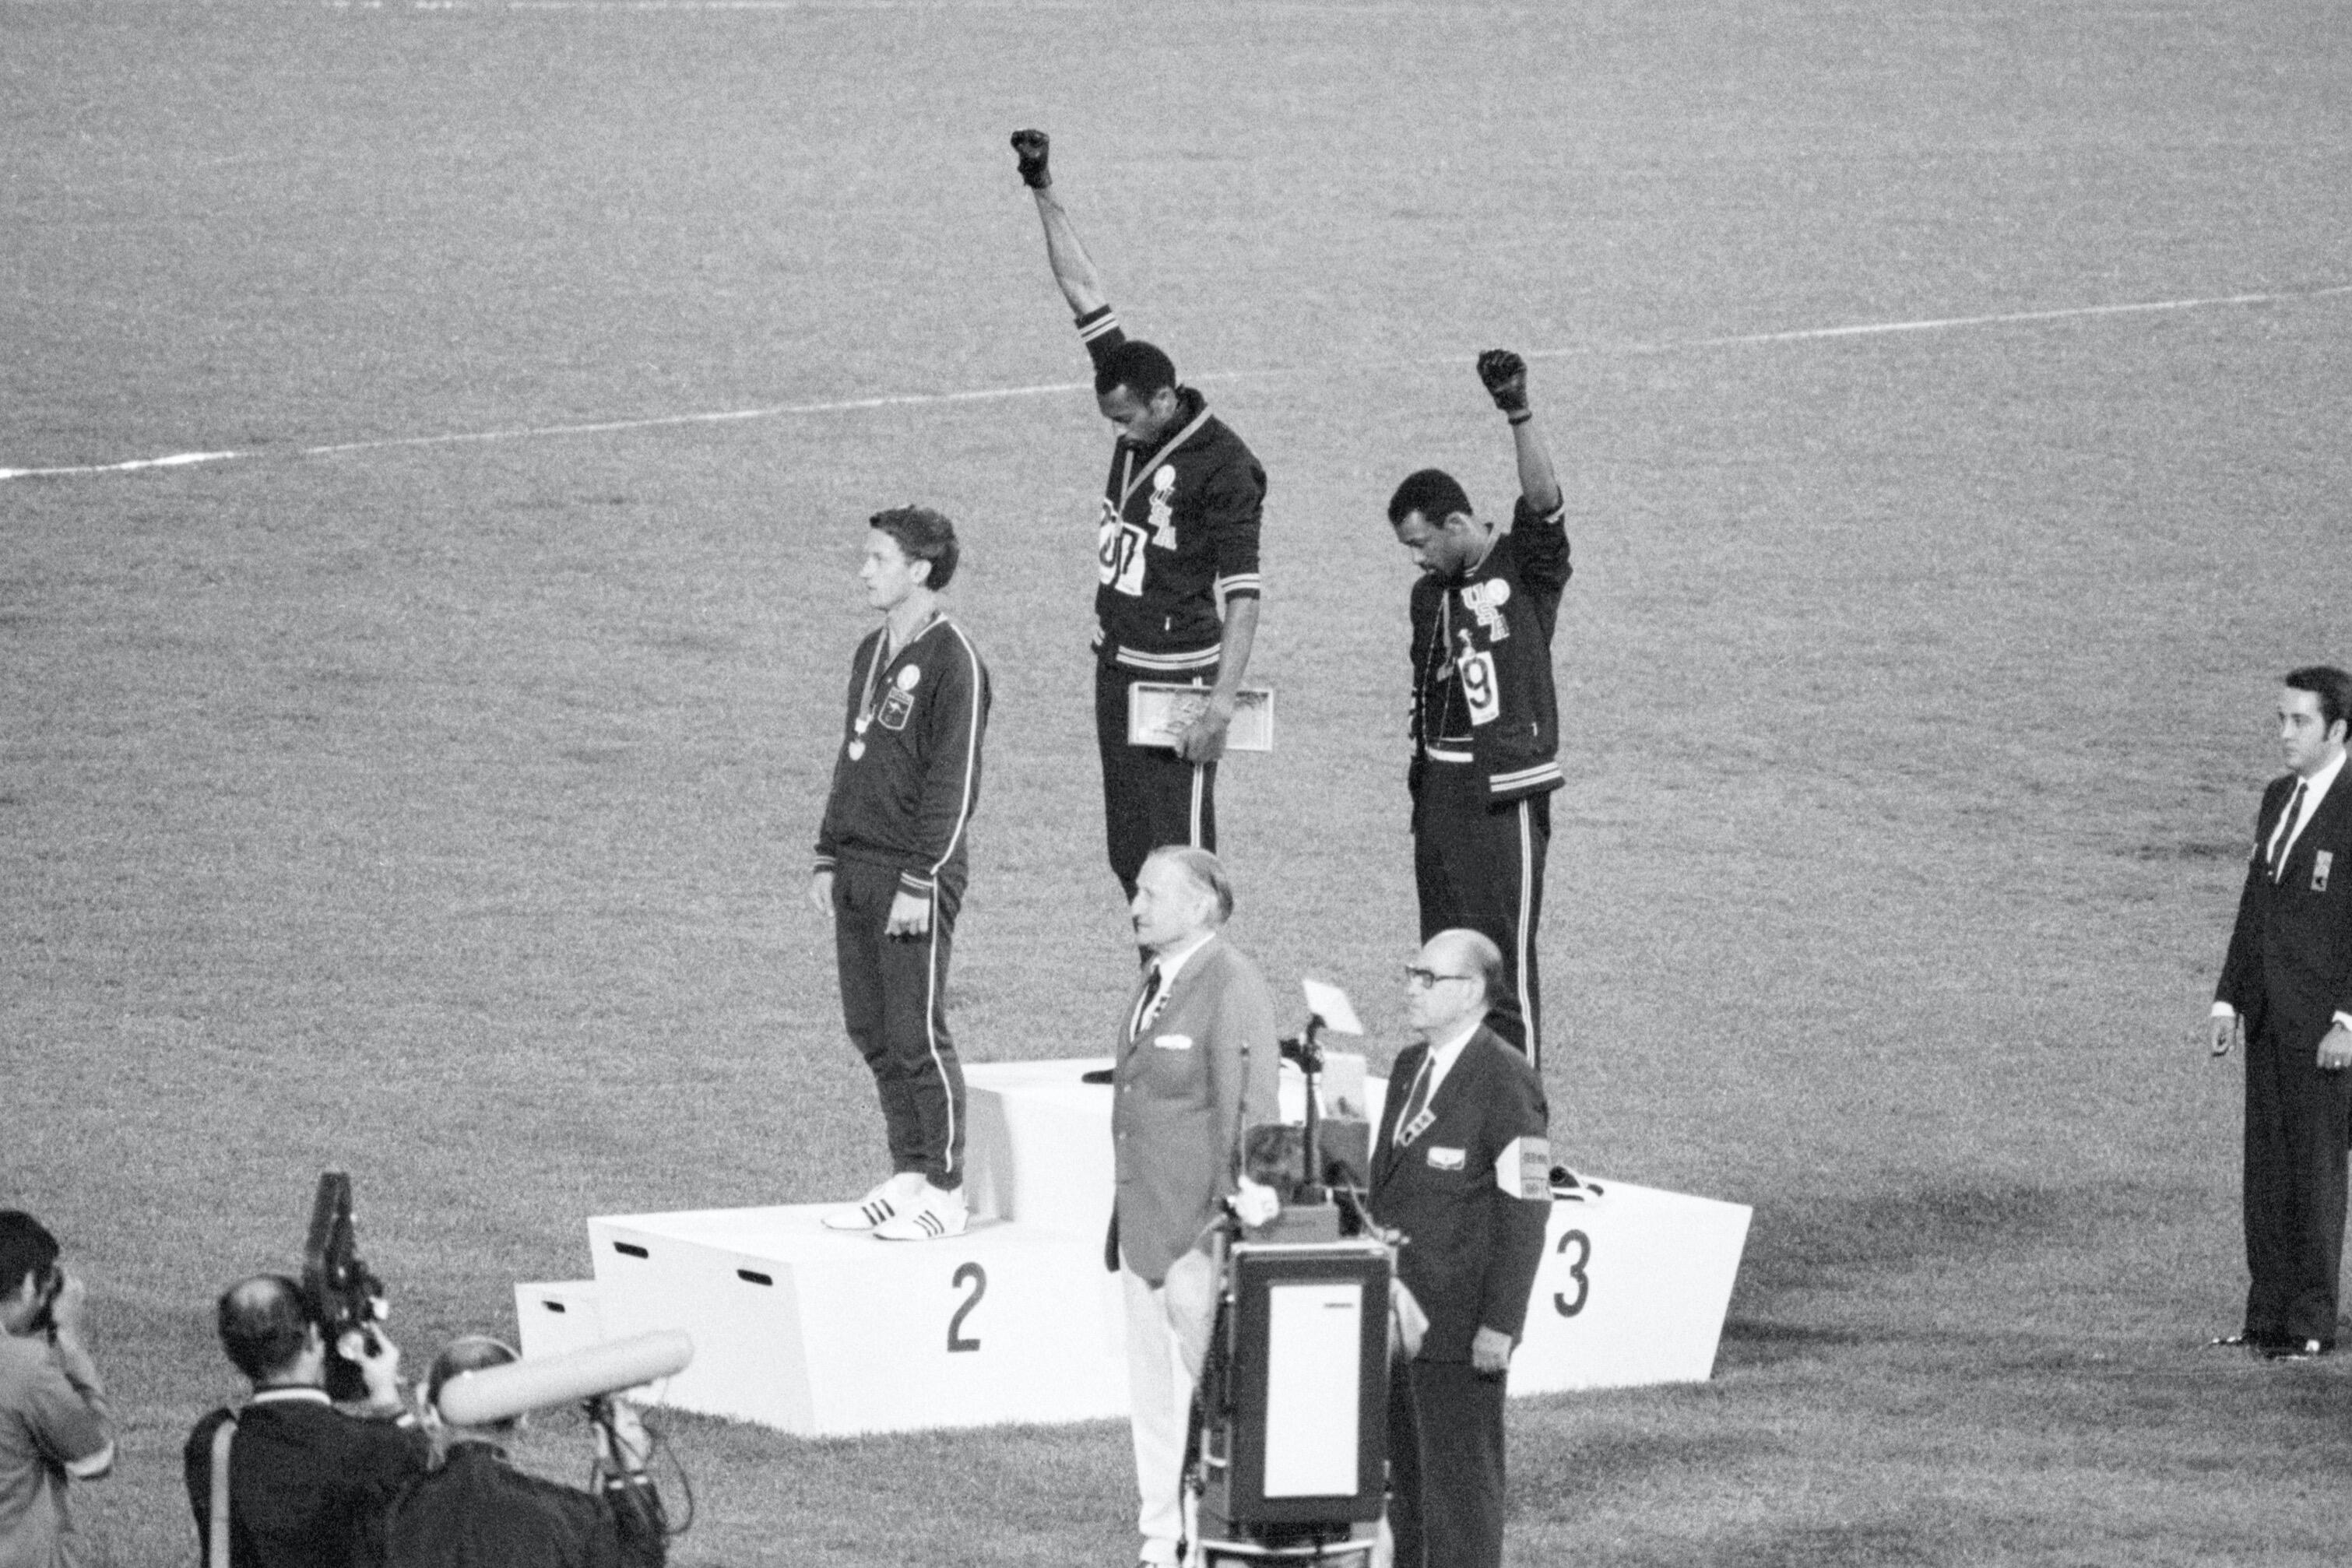 Tommie Smith and John Carlos with raised fists on the medal stand at the 1968 Summer Olympics